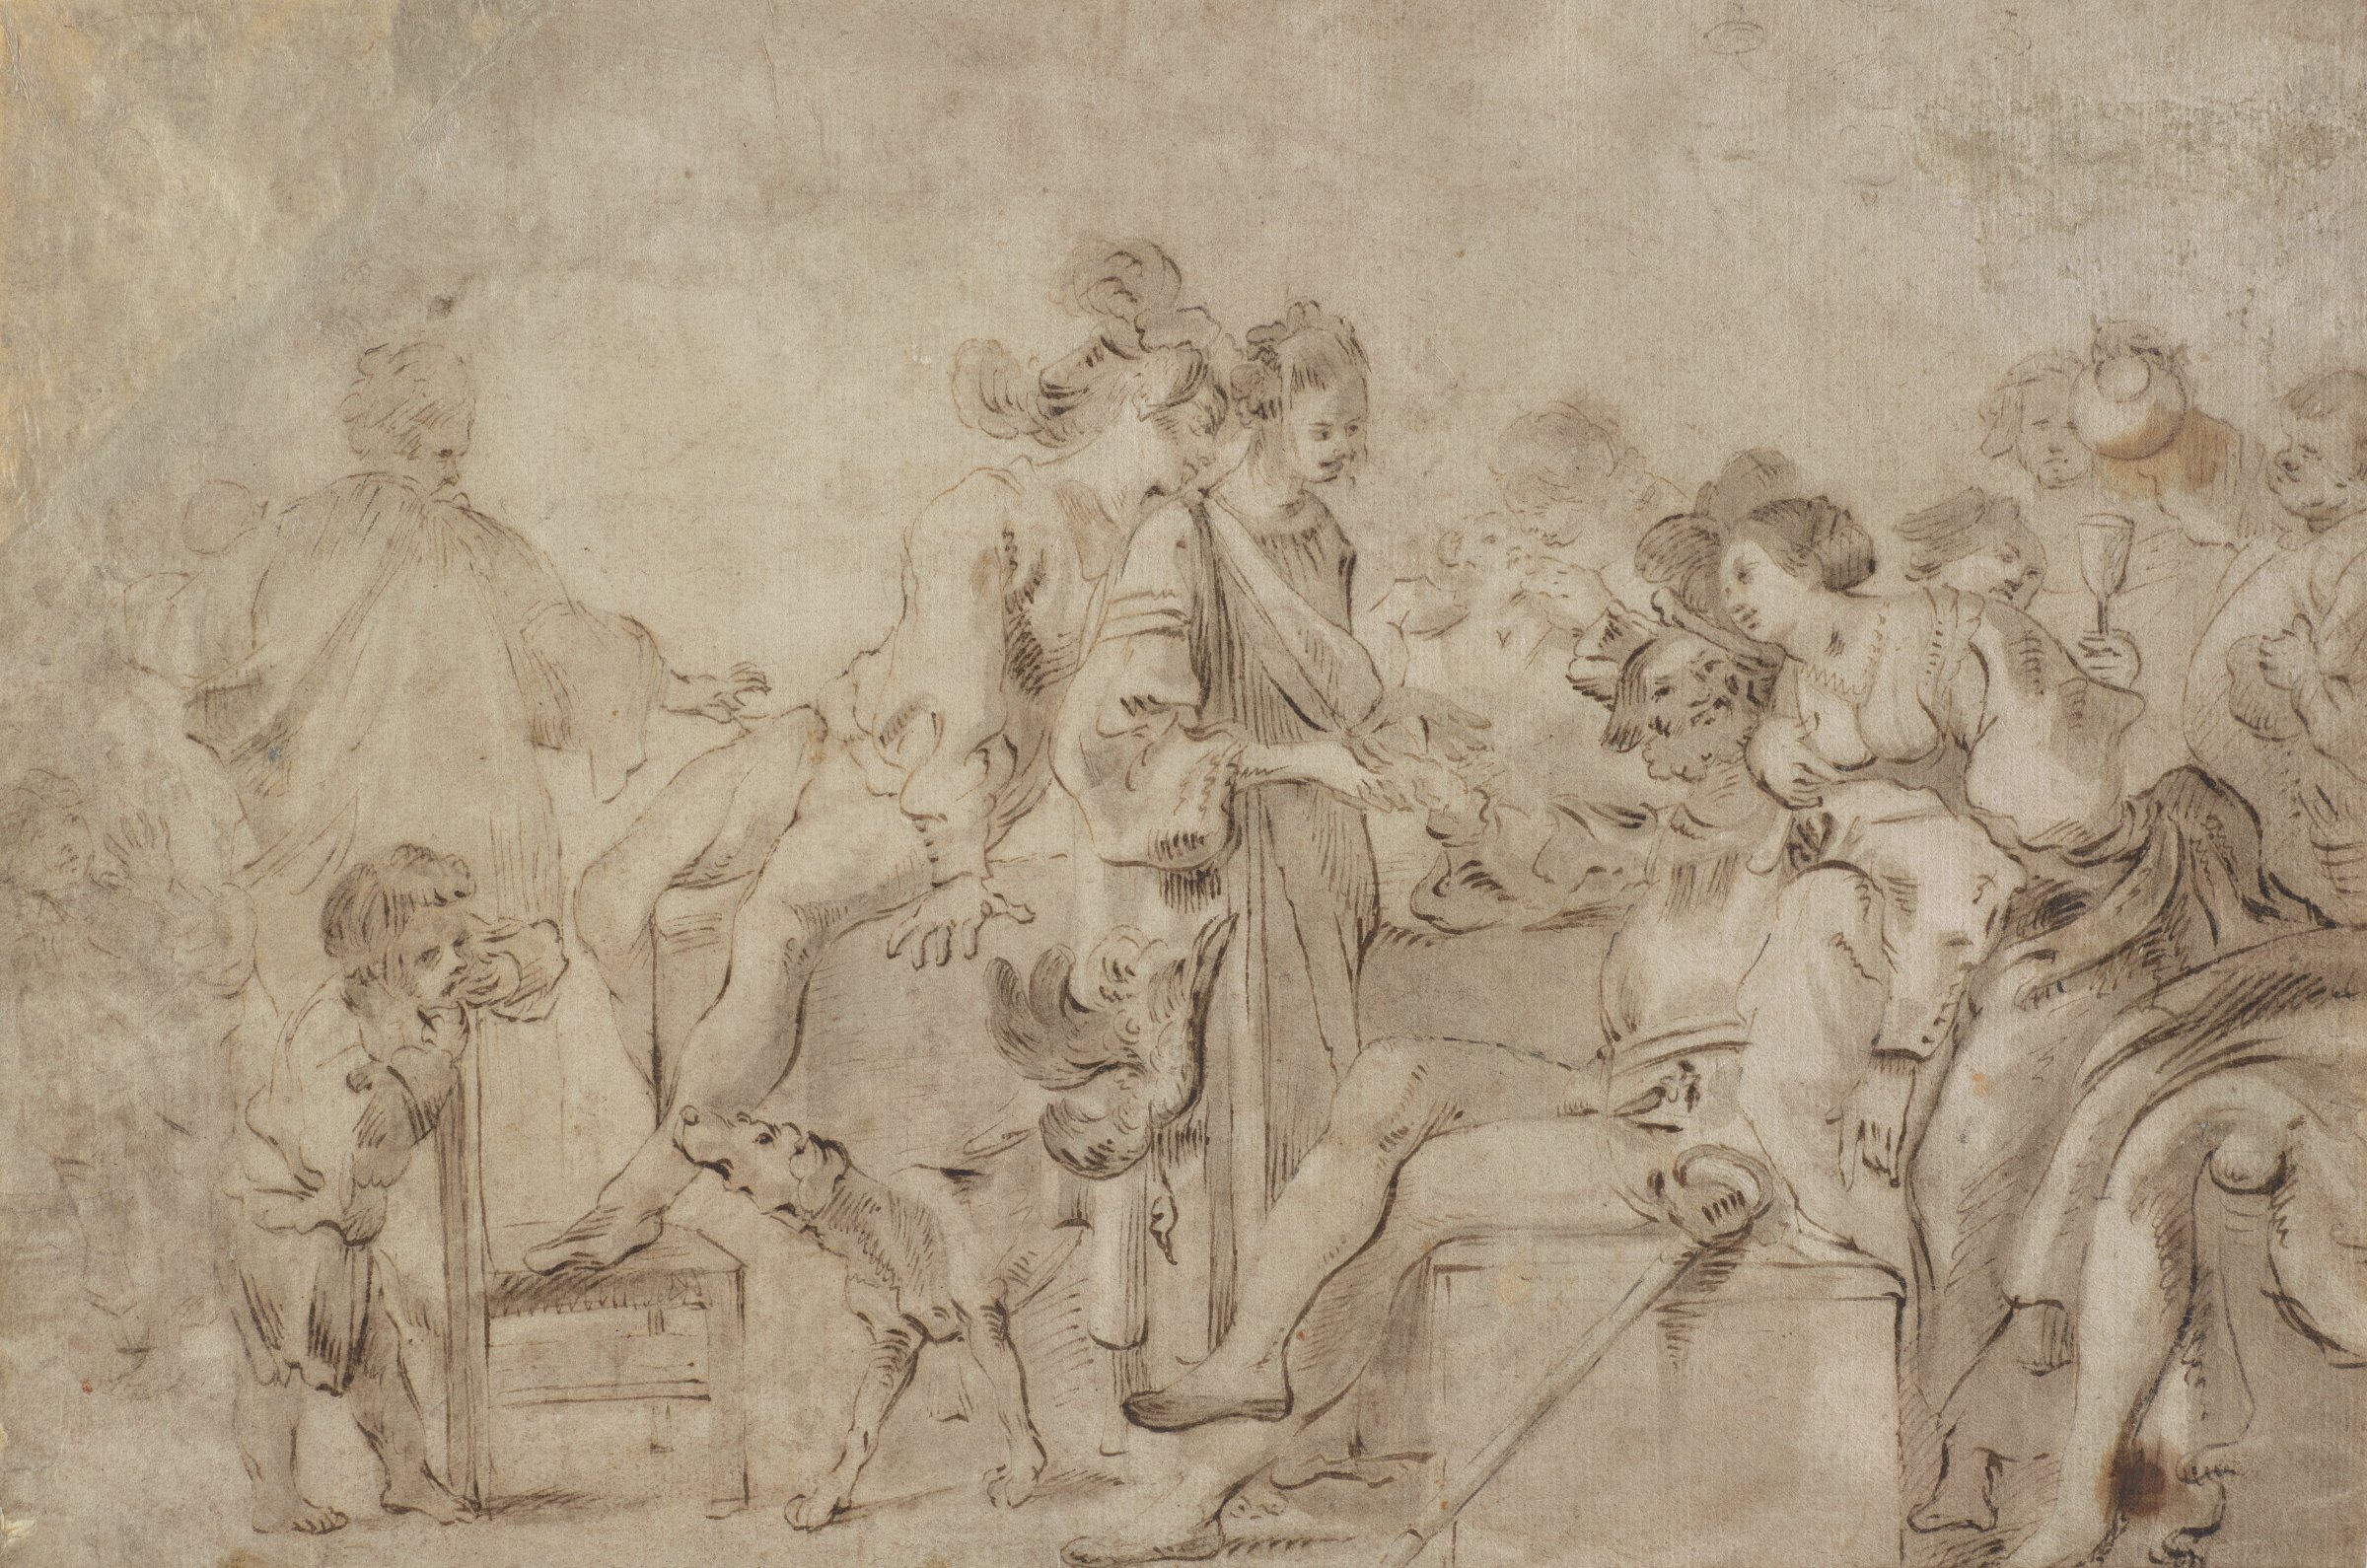 In a party setting, a woman stands in the center of the composition reading the palm of a seated man. Others gather around to watch the scene. A dog walks through the crowd. On the right, a man pours another figure a glass of wine.